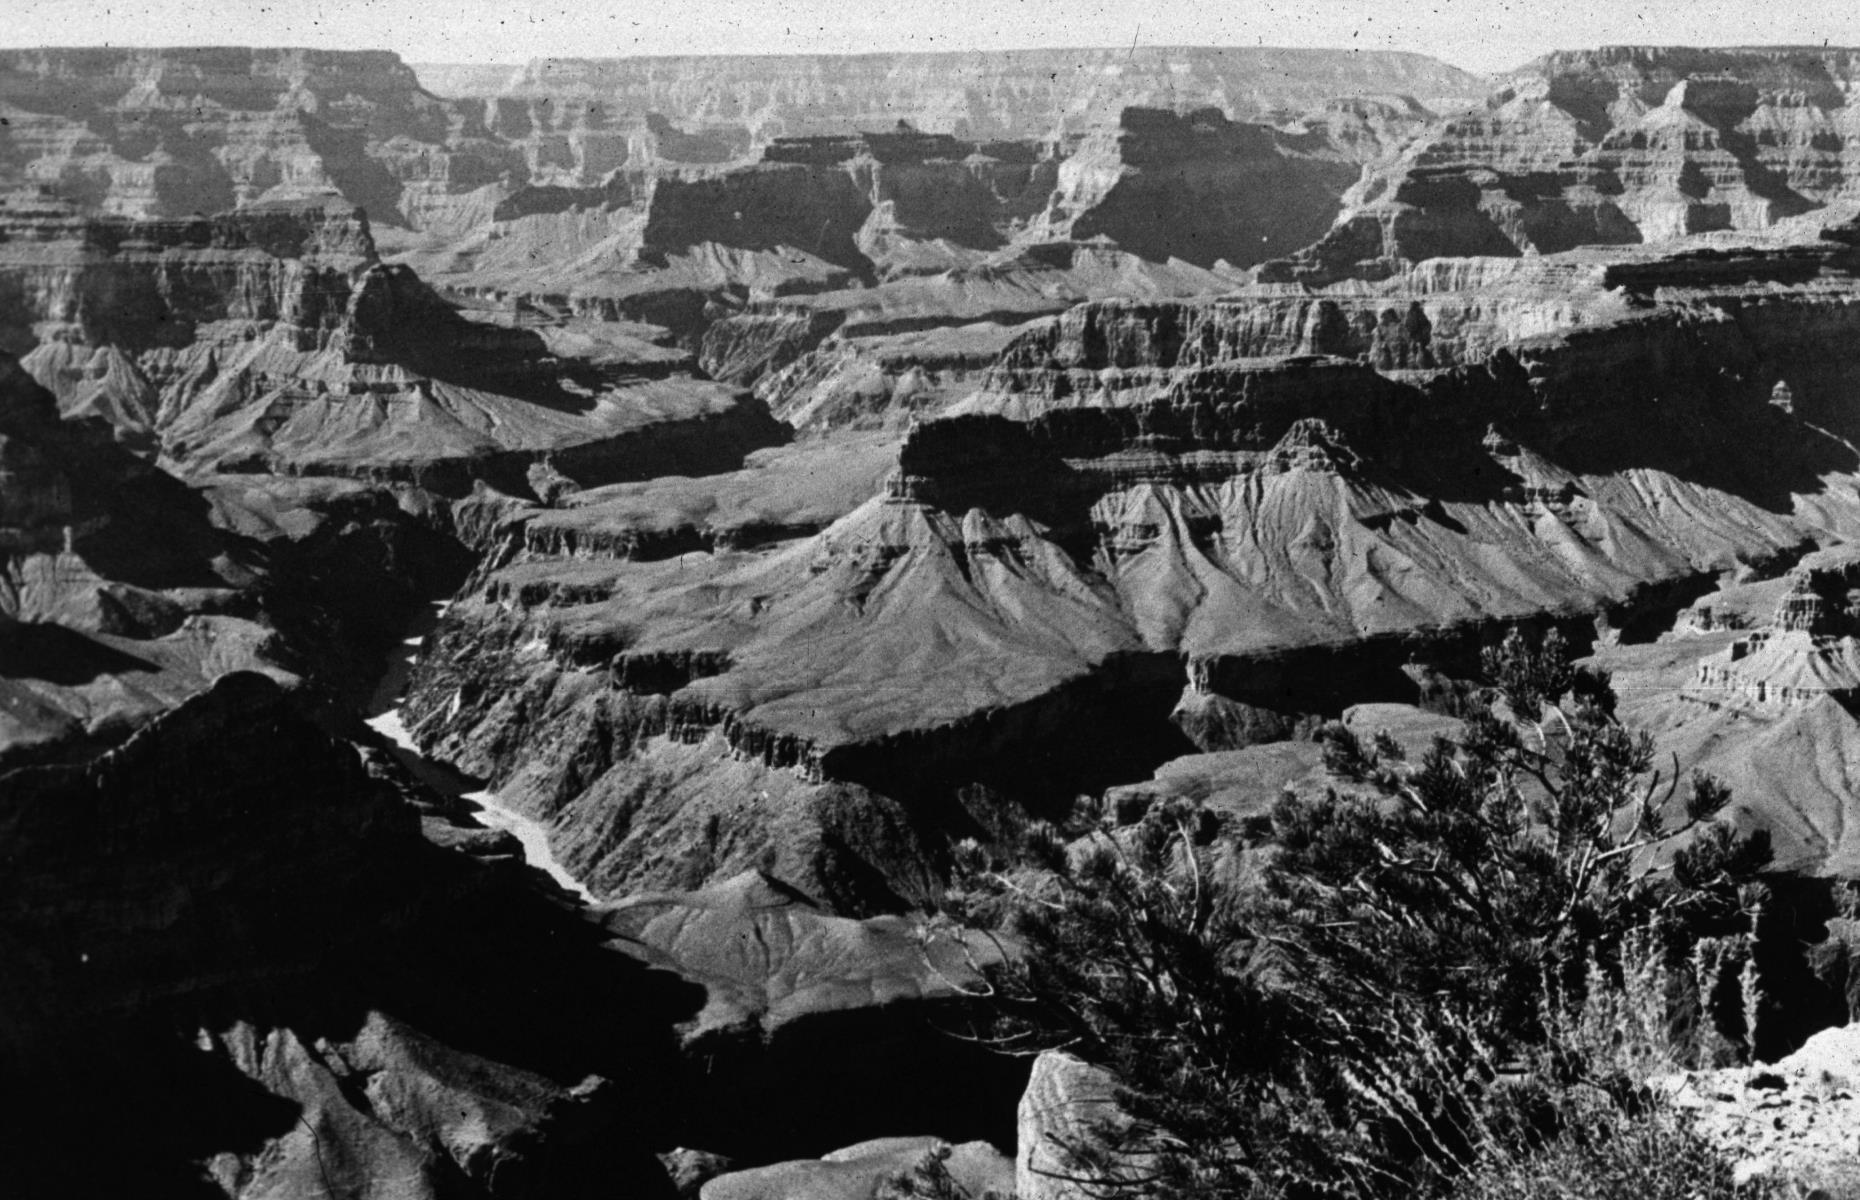 Slide 8 of 47: Though the jaw-dropping Grand Canyon was carved out by the Colorado River over millennia, it's been a US National Park for a little over 100 years, celebrating its centenary in 2019. The enormous canyon plunges to around 6,000 feet (1,829m) at its deepest point, drawing visitors with its striking red formations and seemingly endless vistas. It's pictured here in all its glory circa 1940.